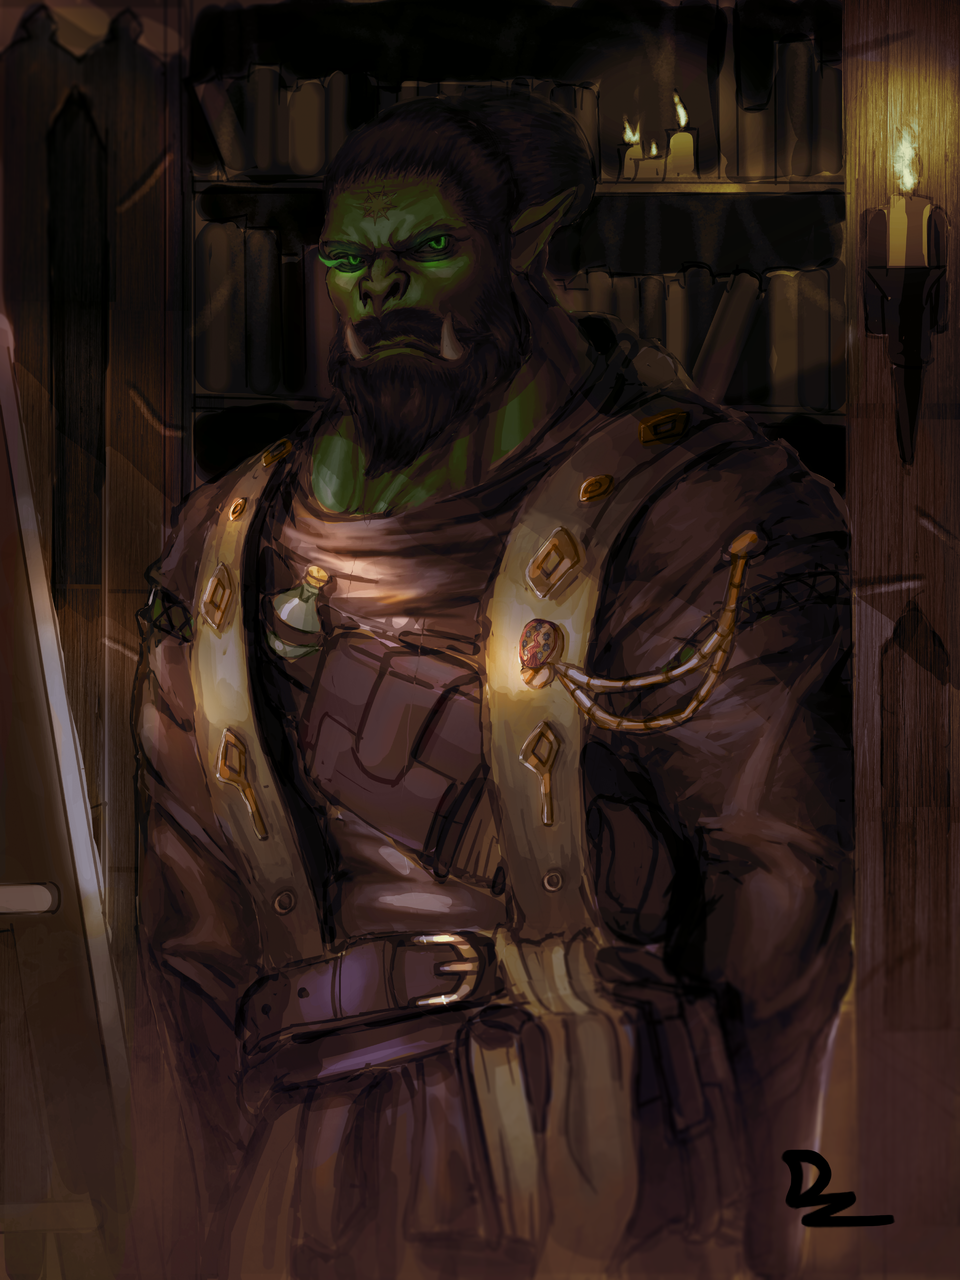 Cleric Orc Illust of D'zaky fantasy February2021_Fantasy monster ogre books library Librarian orc